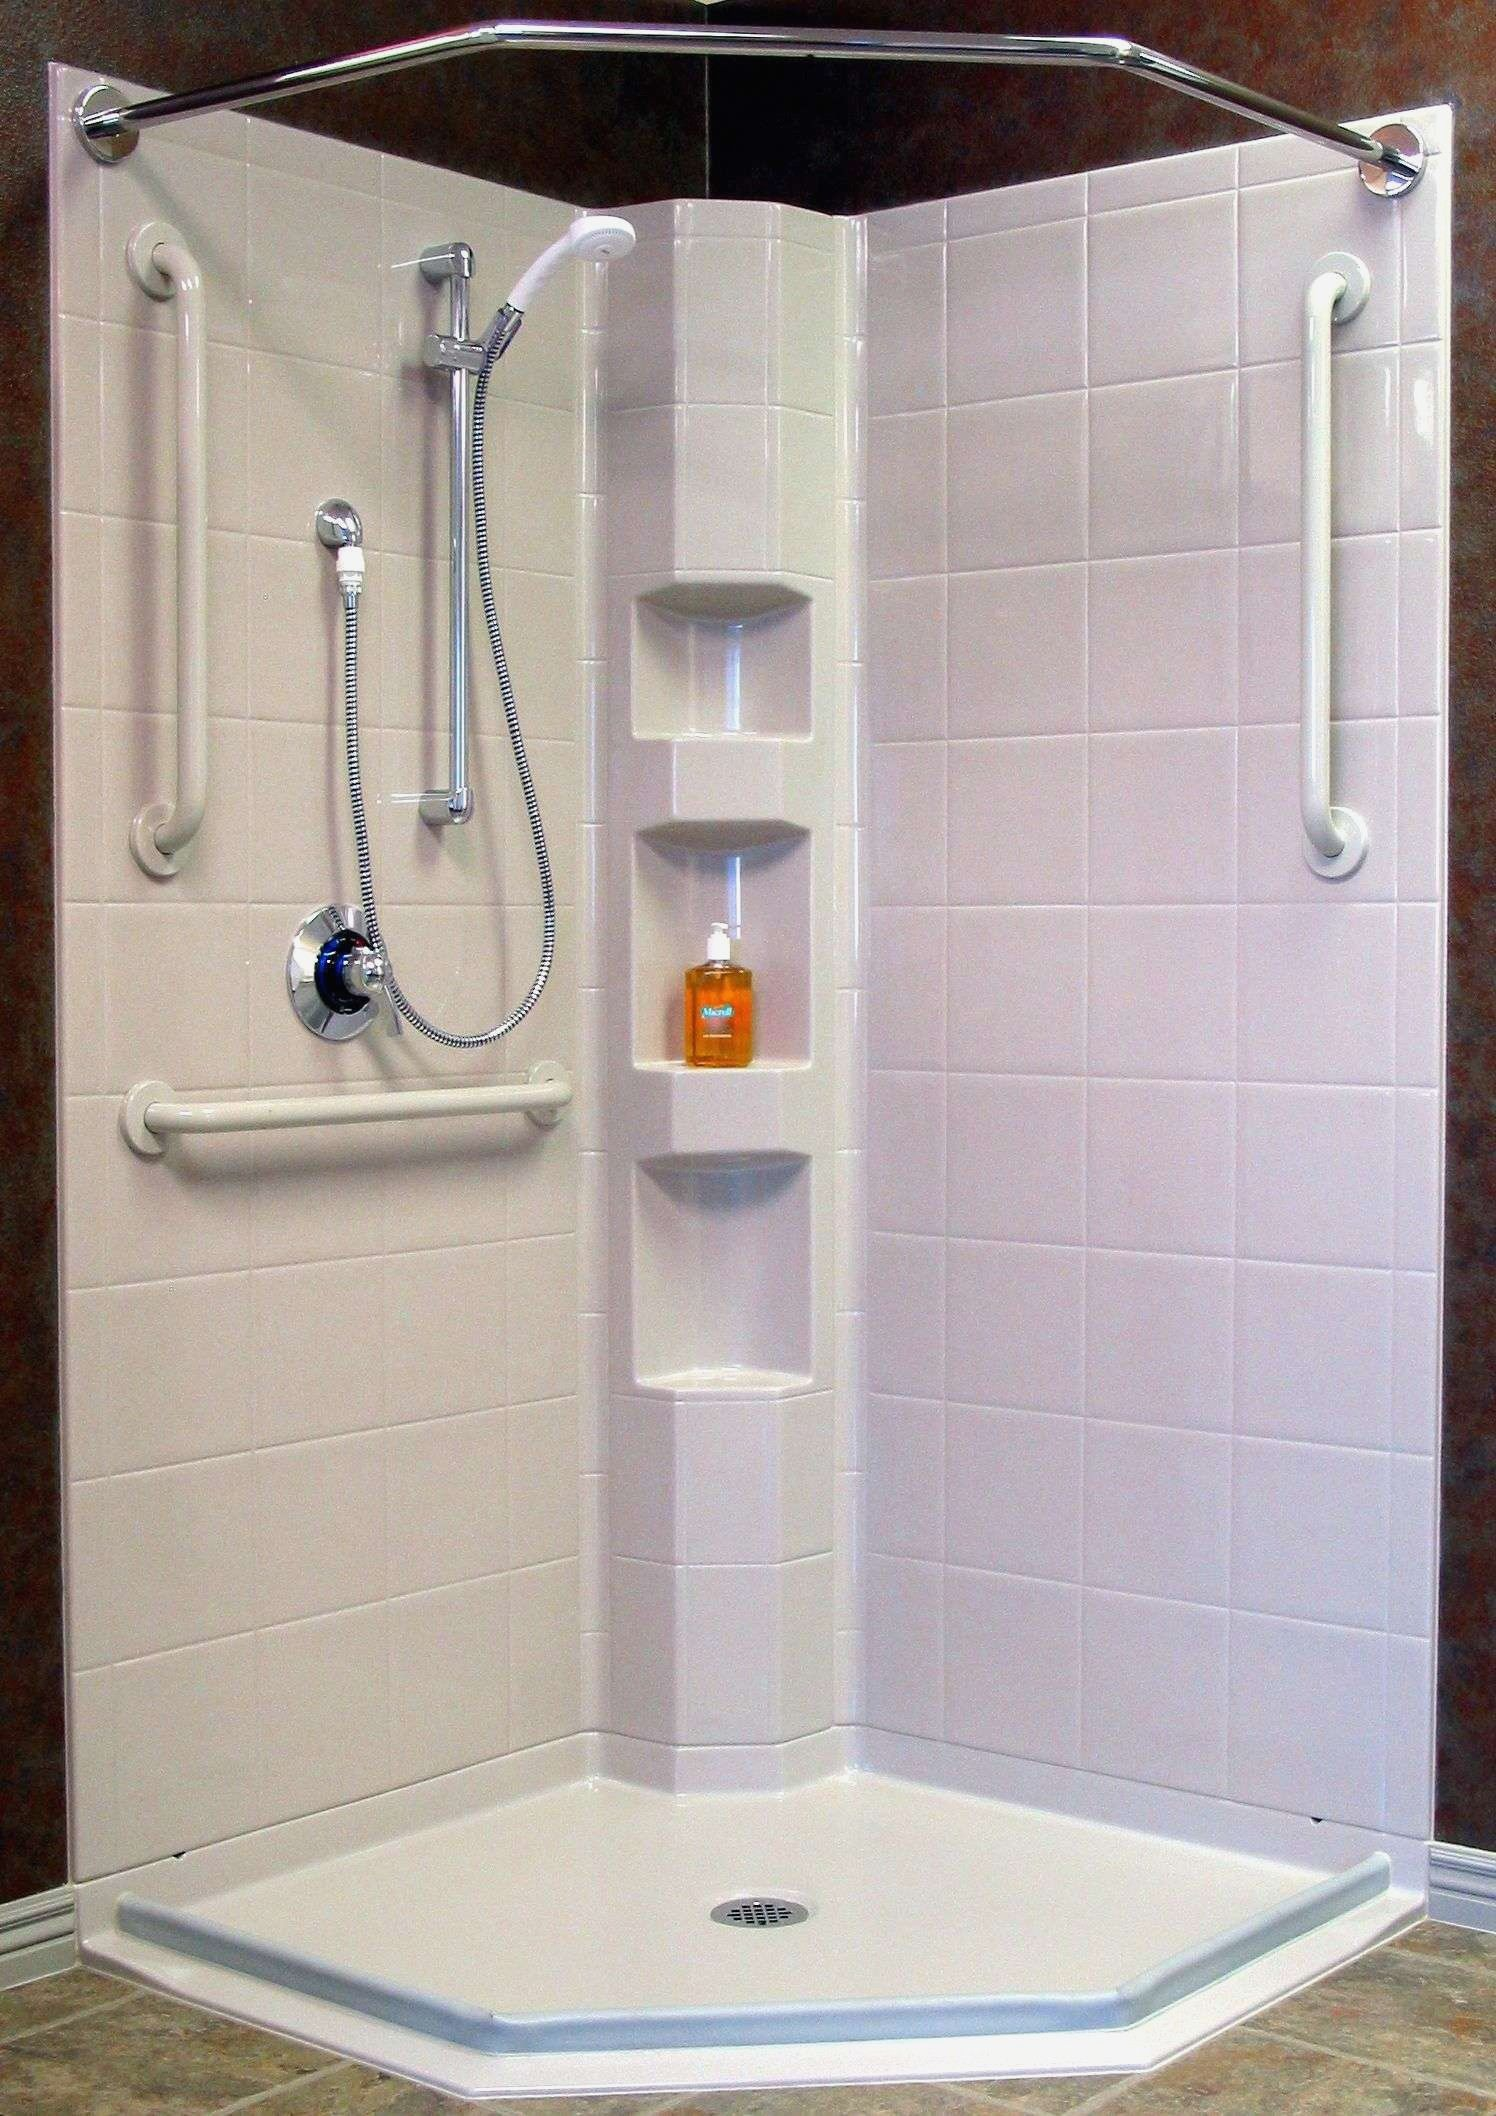 20 Out Of The Box Lowes Shower Panels Corner Shower Stalls Neo Angle Shower Corner Shower Units